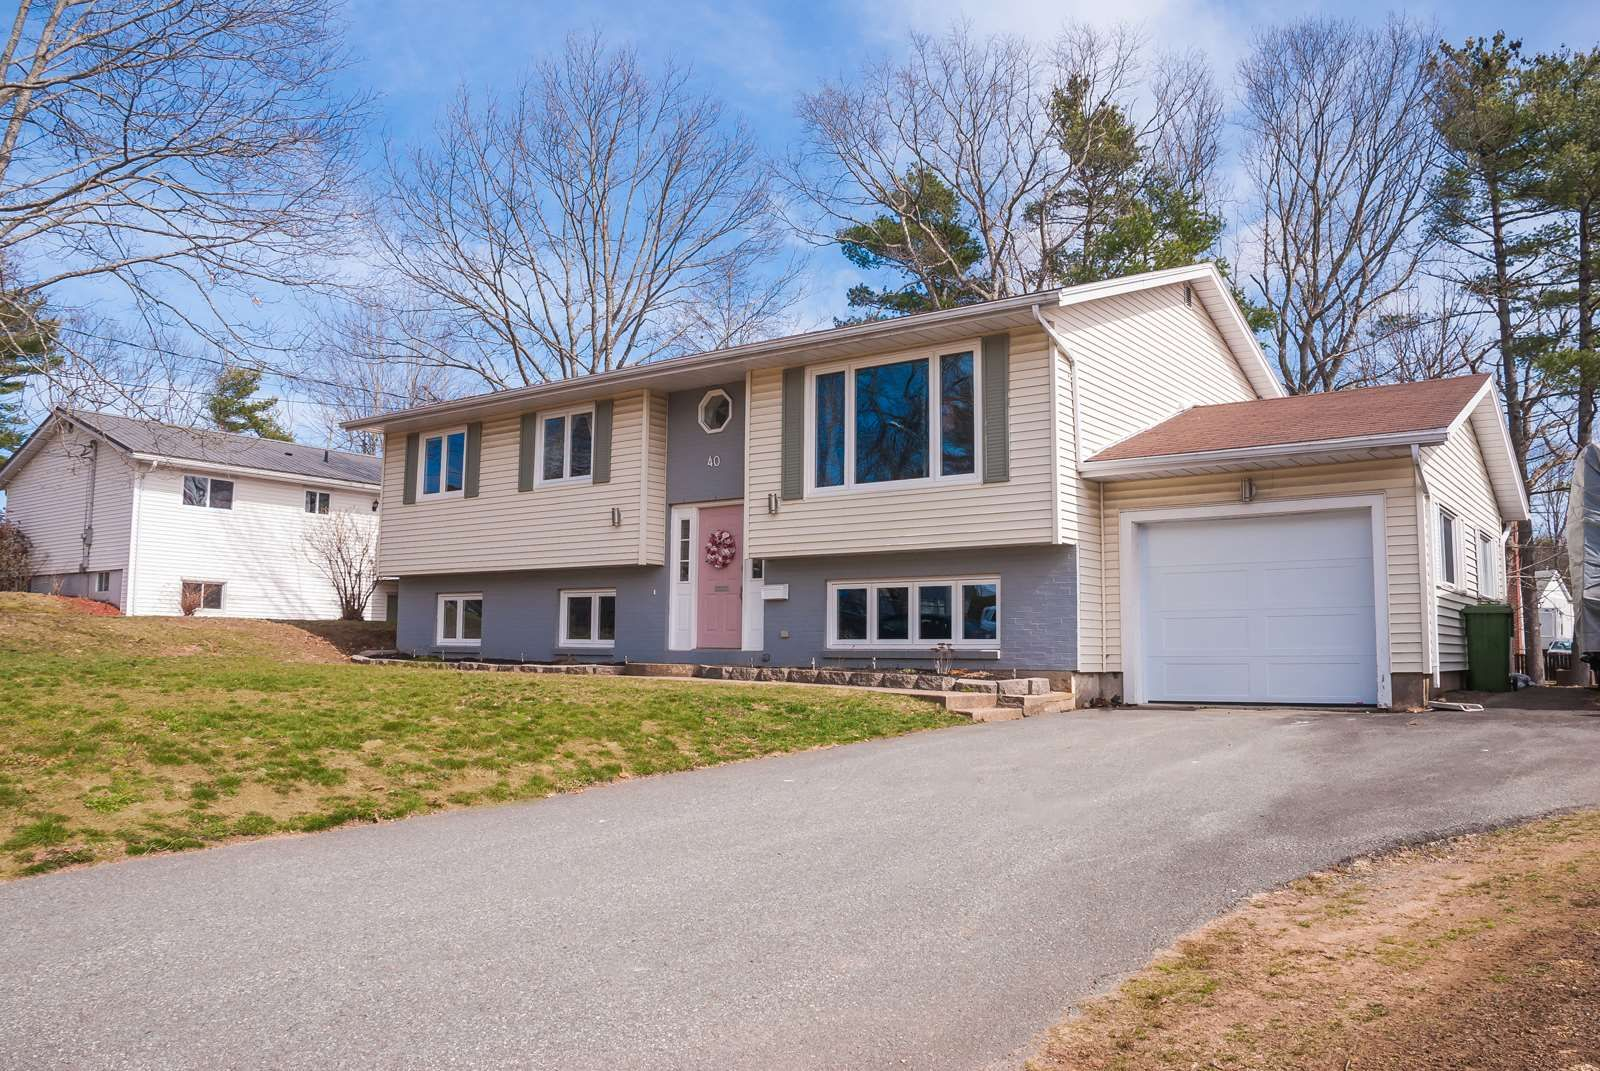 Main Photo: 40 MacNeil Drive in Bridgewater: 405-Lunenburg County Residential for sale (South Shore)  : MLS®# 202108434